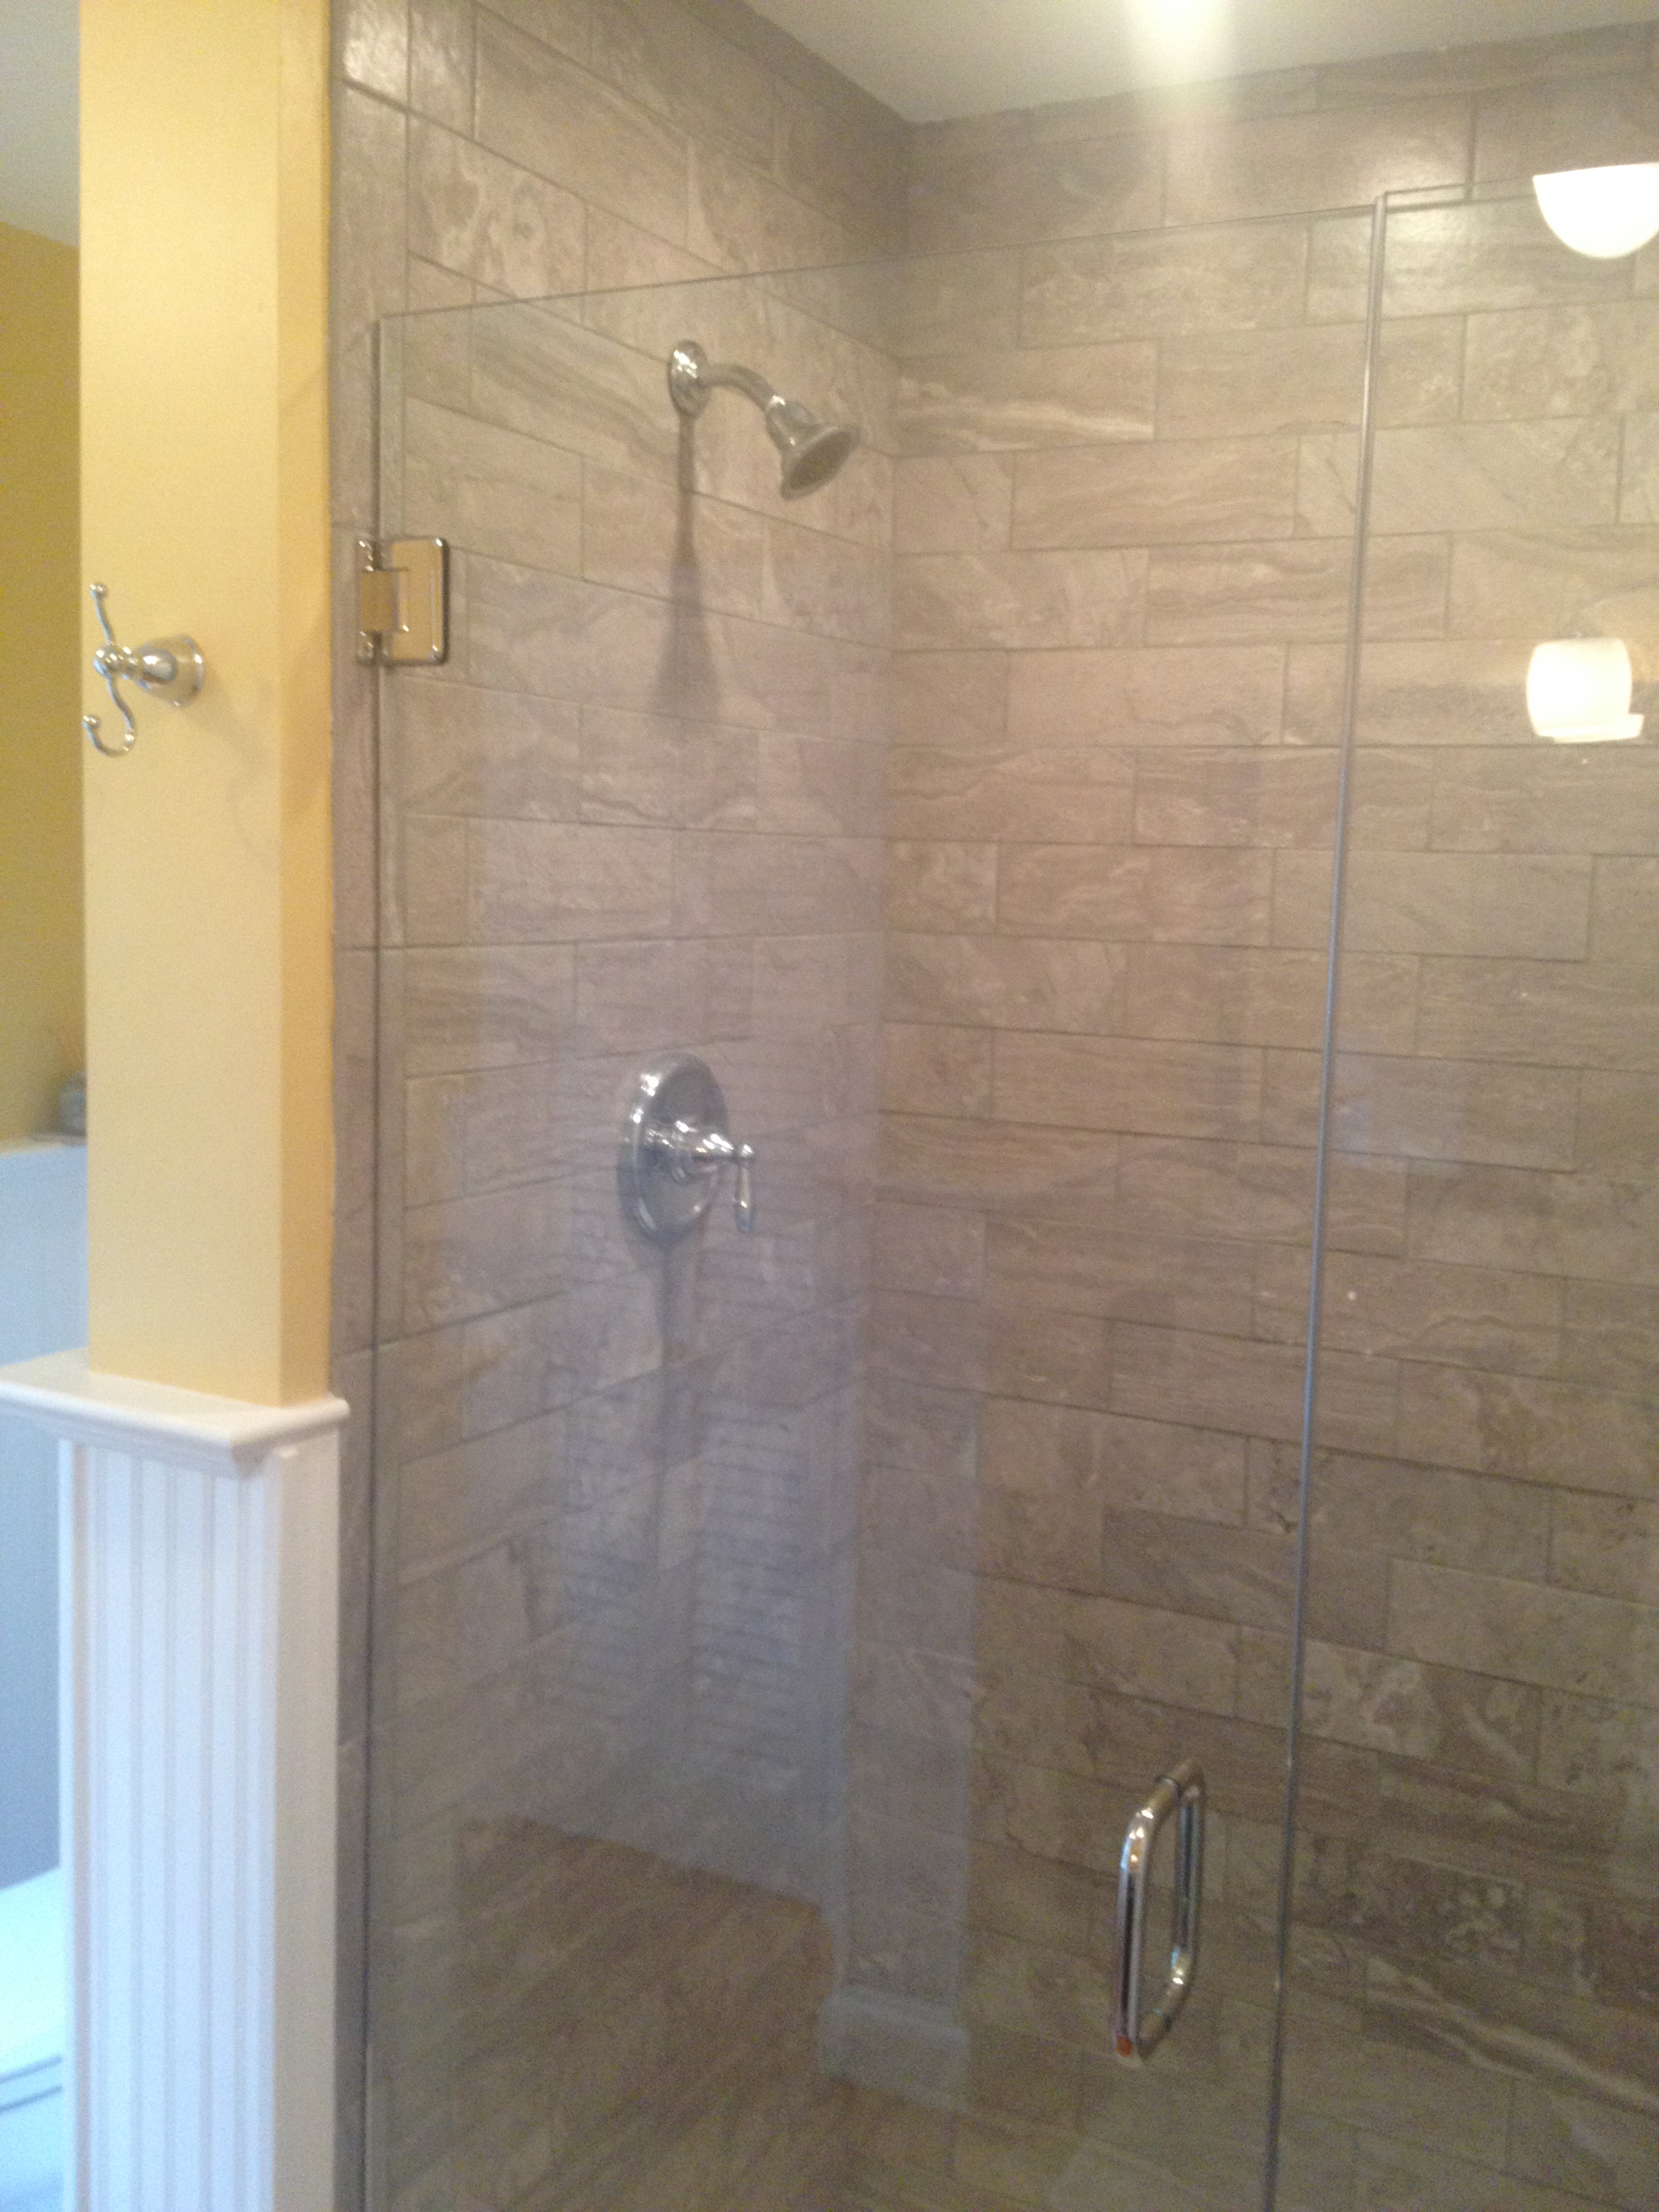 A new tiled shower with a frameless glass enclosure.